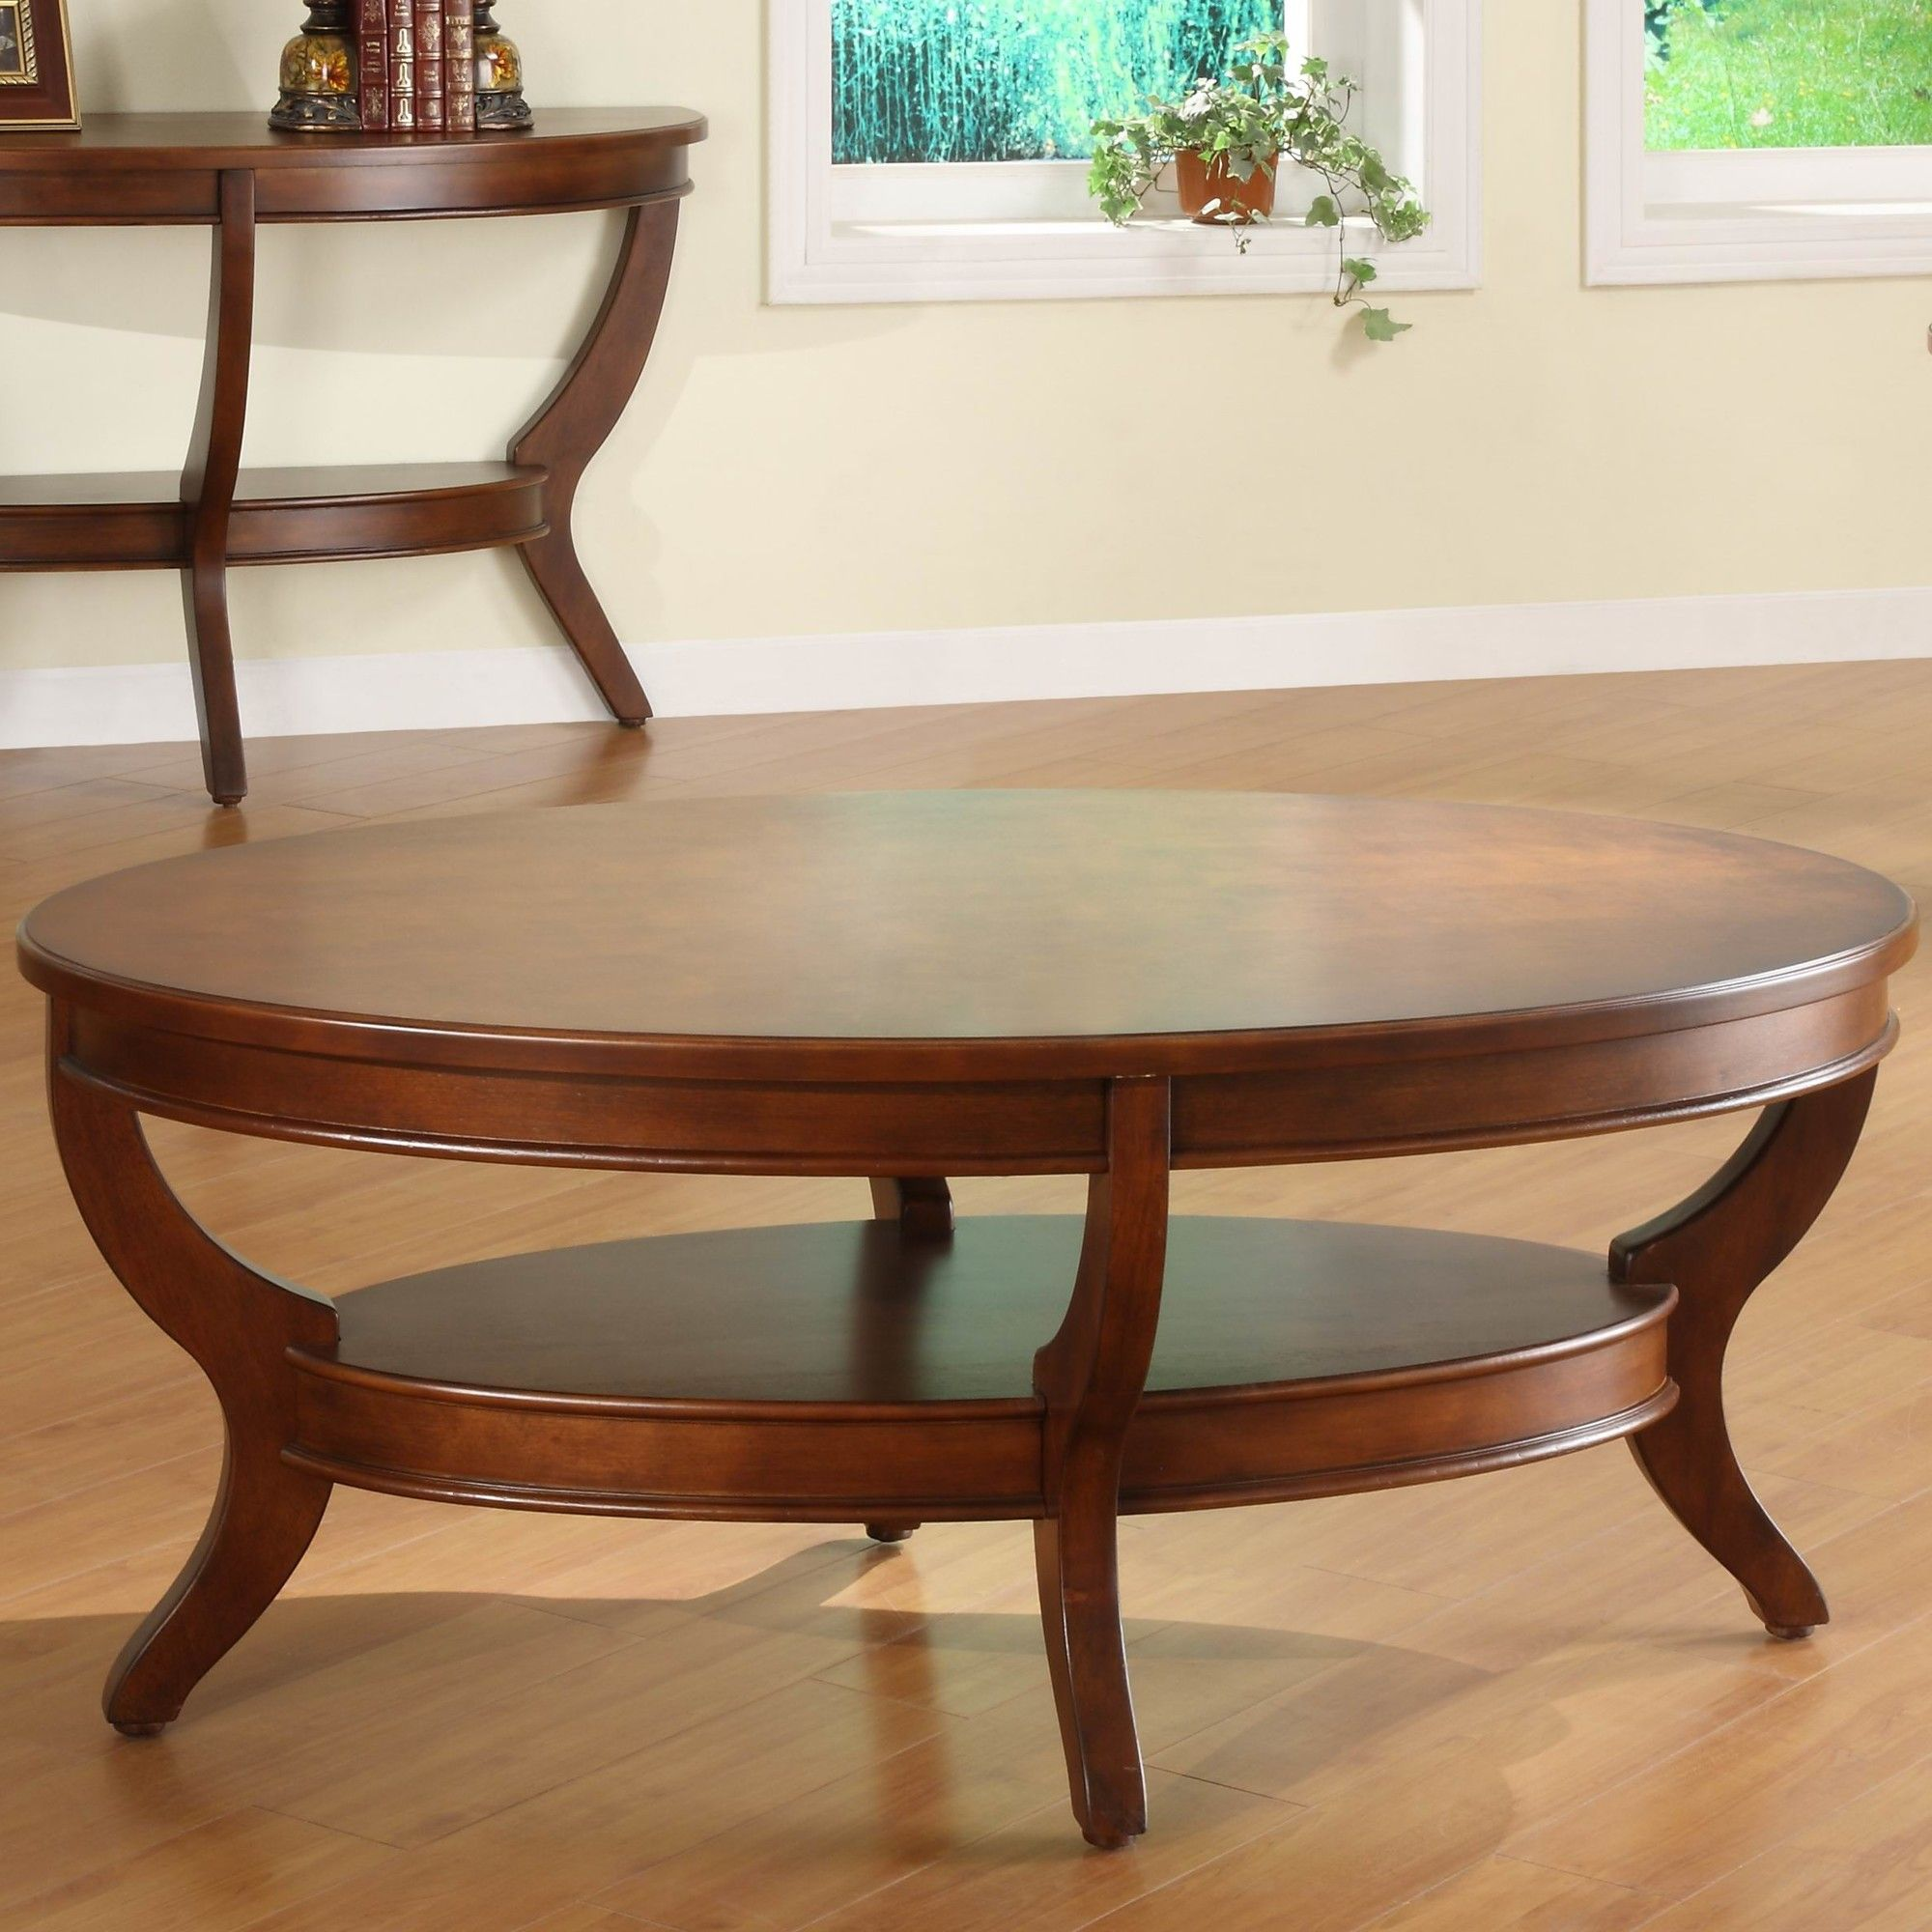 woodbridge home design. Woodbridge Home Designs Avalon Coffee Table  Reviews Wayfair